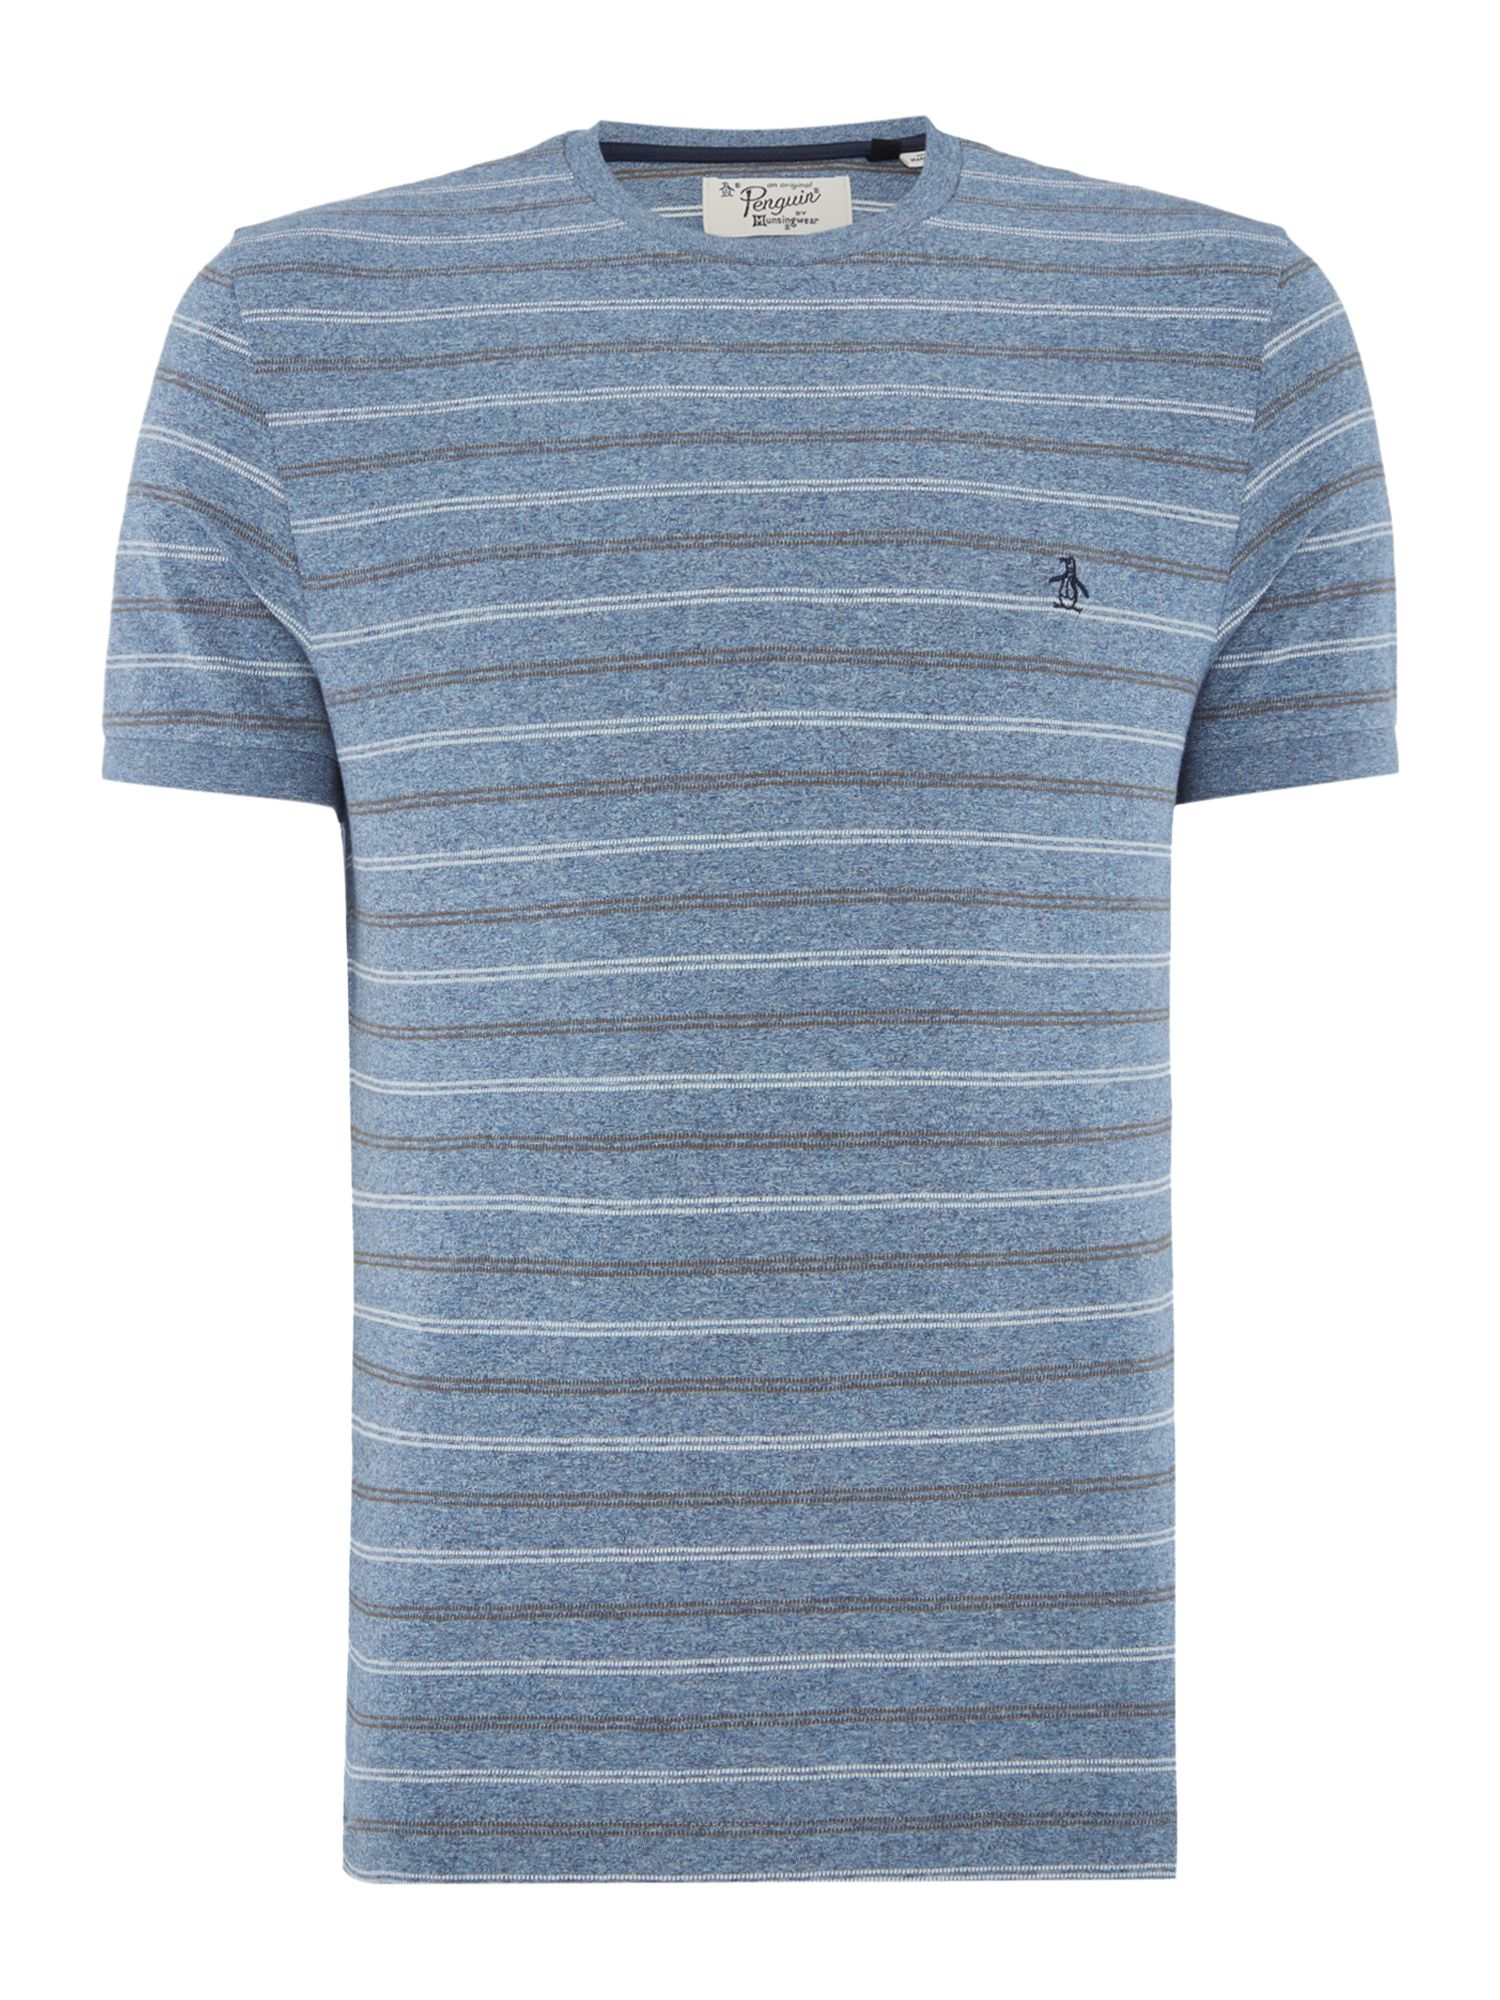 Men's Original Penguin Marble-Stripe Short-Sleeve T-shirt, Blue Marl